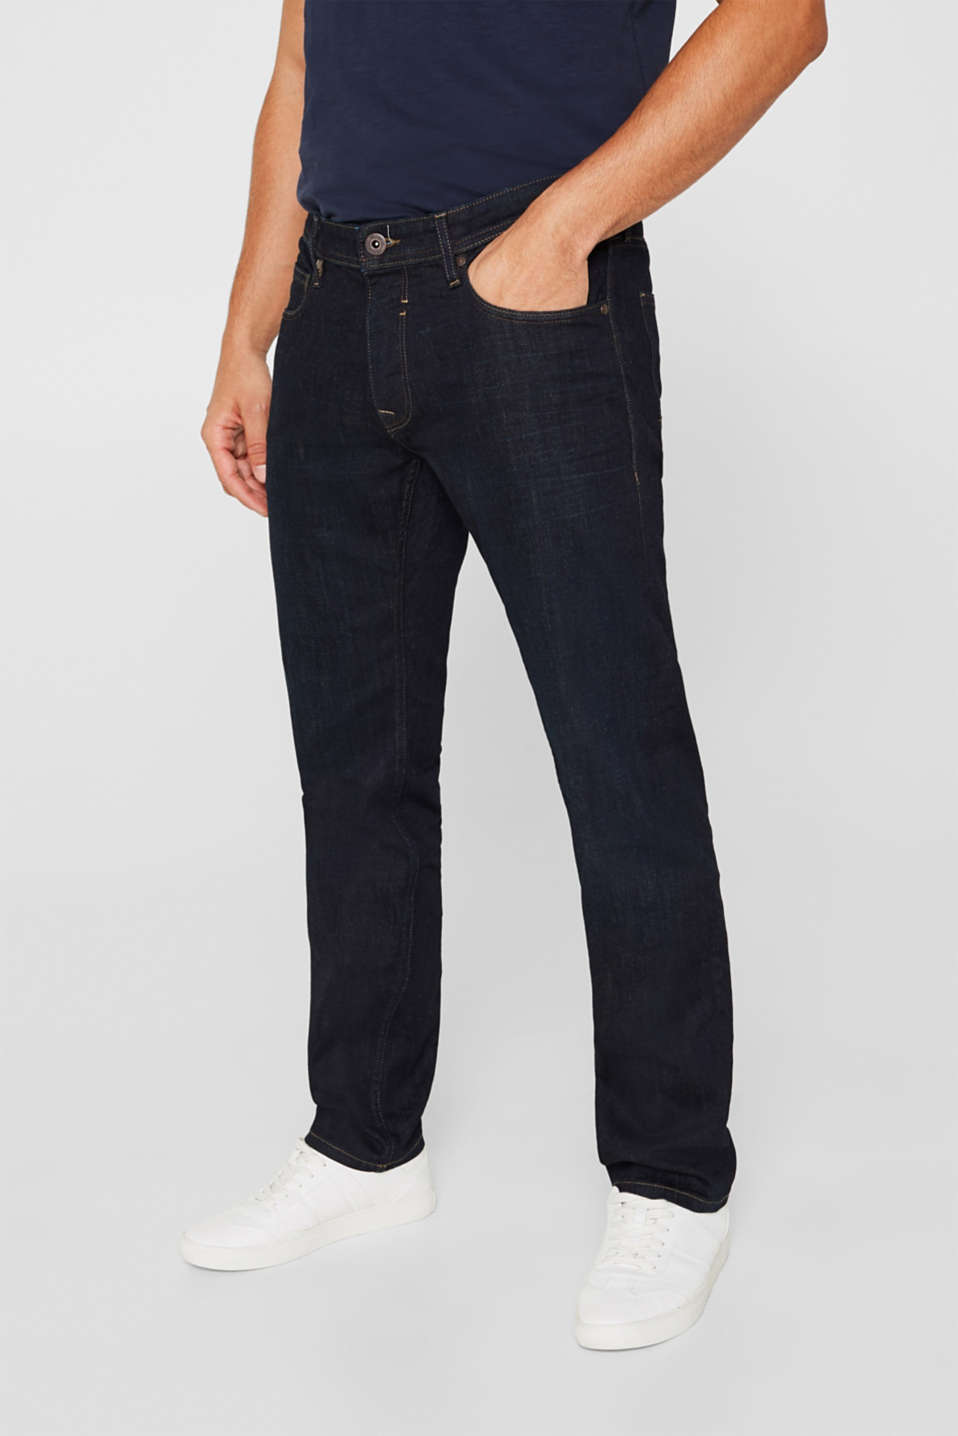 Pants denim Straight fit, BLUE RINSE, detail image number 0